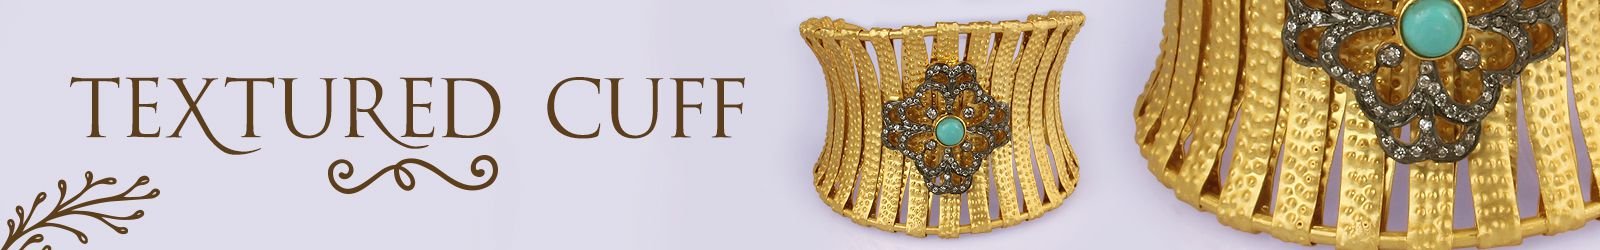 Online Wholesale Silver Textured Cuff Jewelry Store, Shop in Jaipur